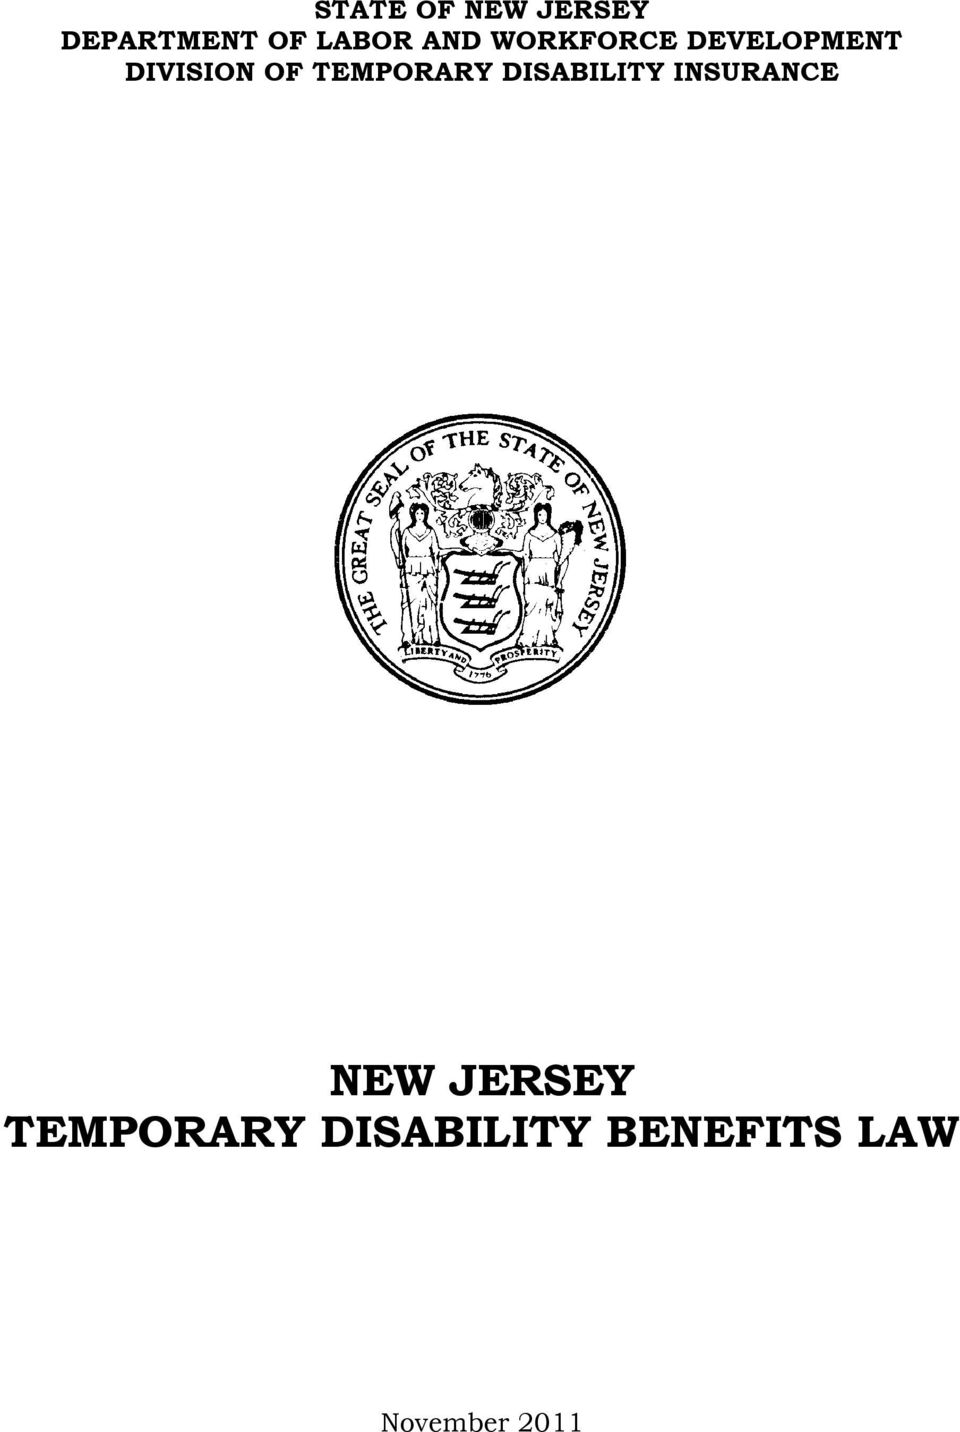 TEMPORARY DISABILITY INSURANCE NEW JERSEY